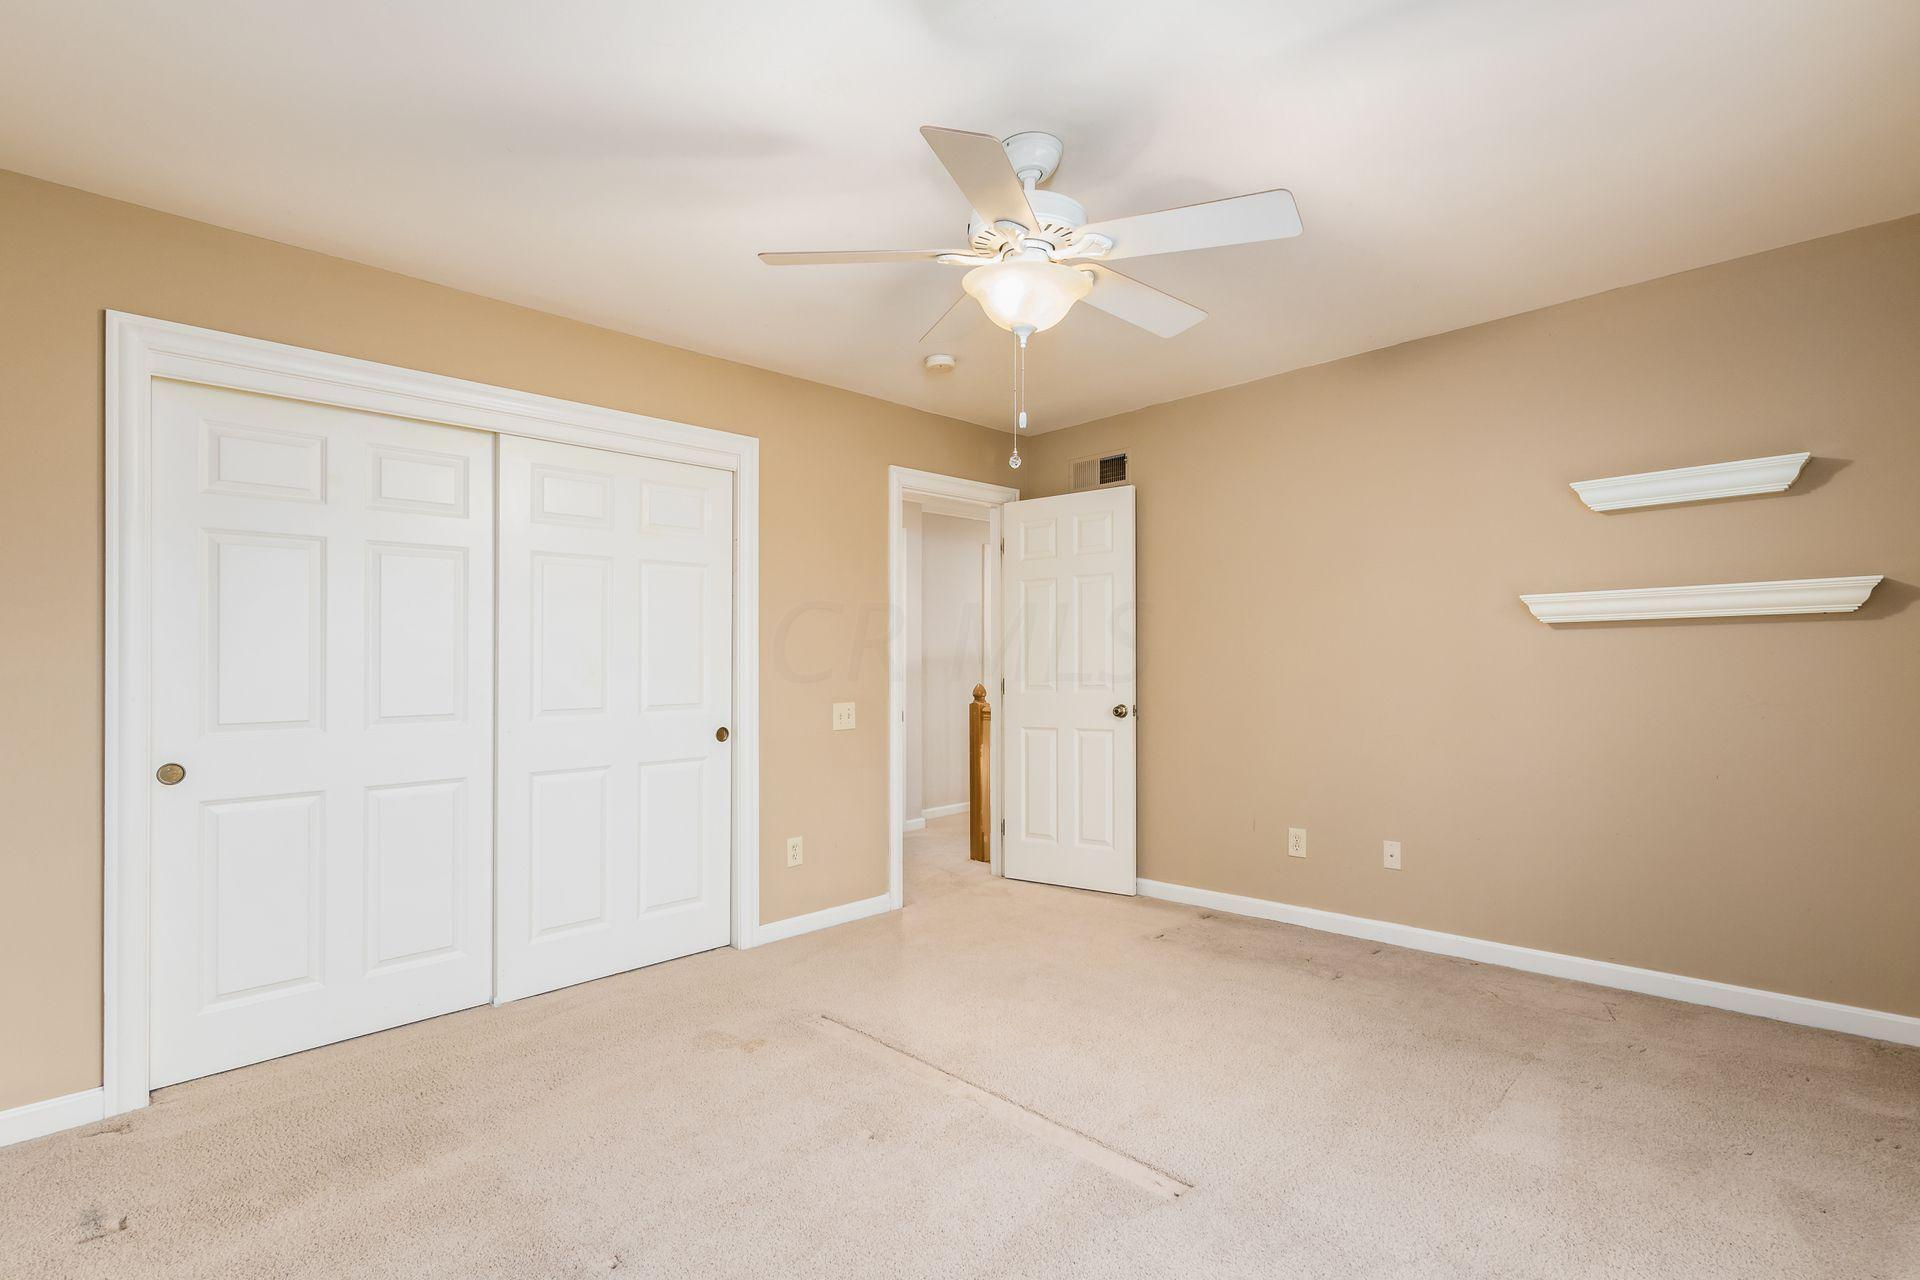 10063 Cartgate Court, Dublin, Ohio 43017, 5 Bedrooms Bedrooms, ,5 BathroomsBathrooms,Residential,For Sale,Cartgate,221000359